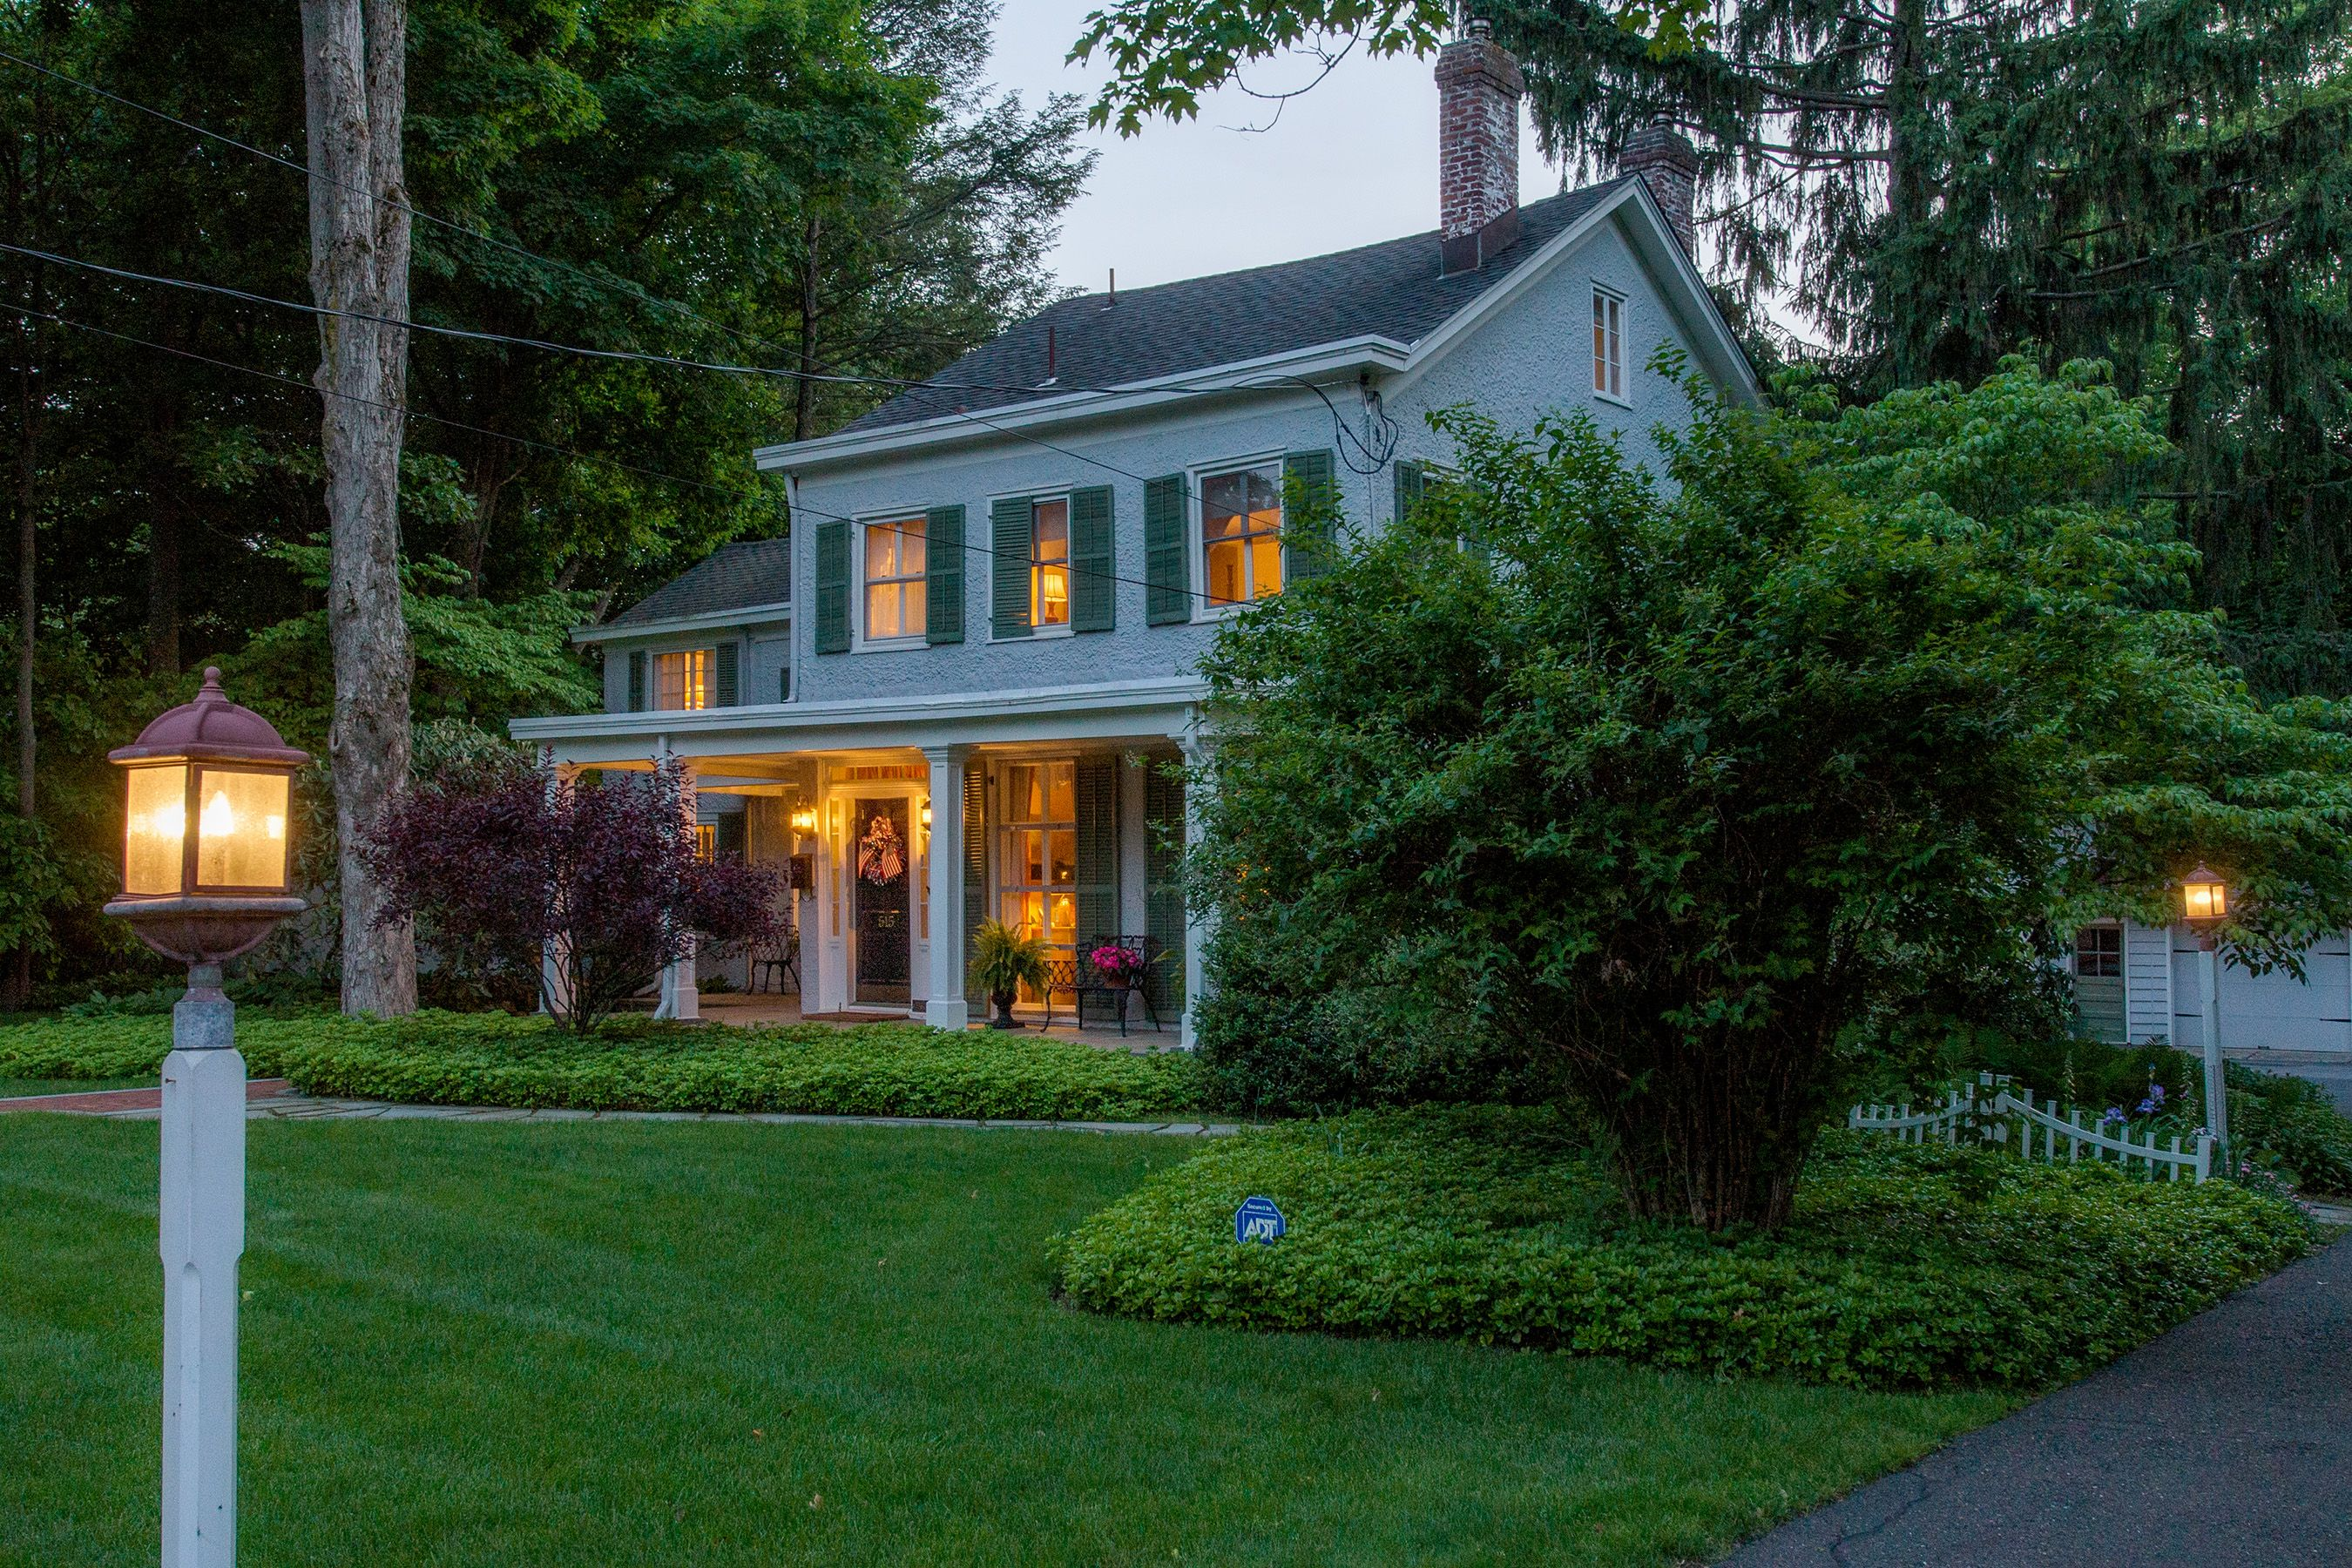 The Home Is Named For Rev Abram Ryerson Pastor Of The Wyckoff